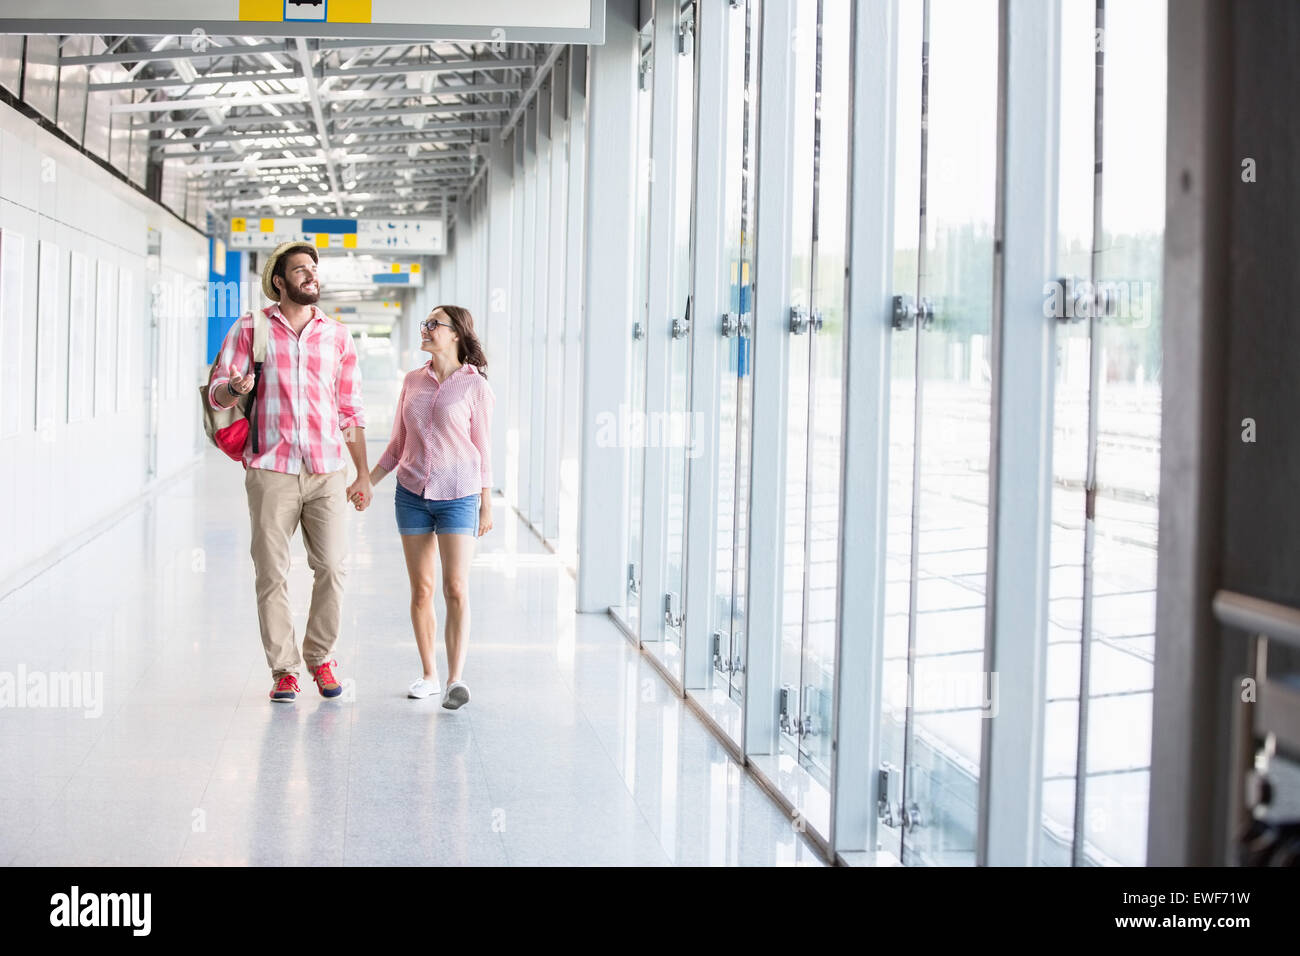 Full-length of couple walking in covered passage - Stock Image